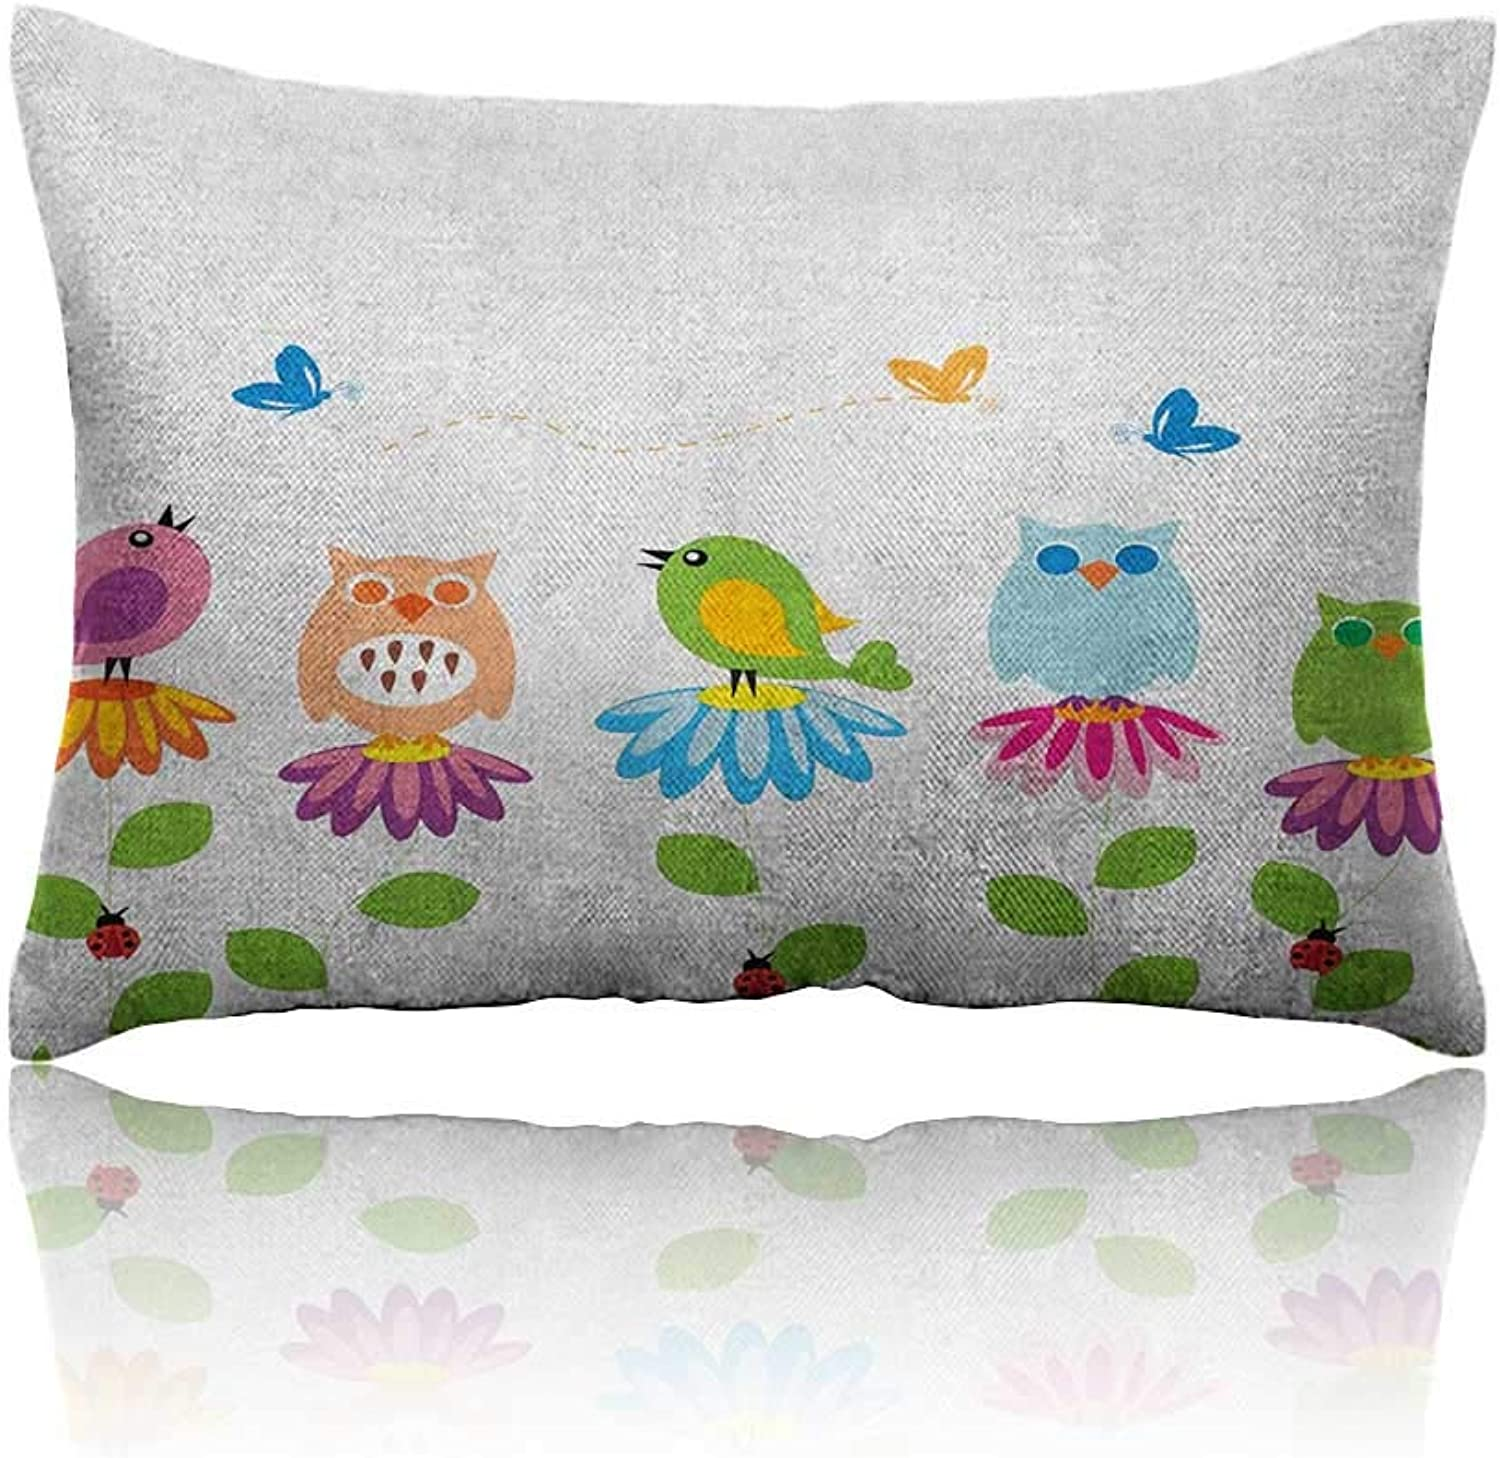 Anyangeight Flowers Cars Pillowcase colorful Cartoon Style Birds on Chamomile Daisy Flowers Butterflies Ladybugs Kids Youth Pillowcase 20 x26  Multicolor